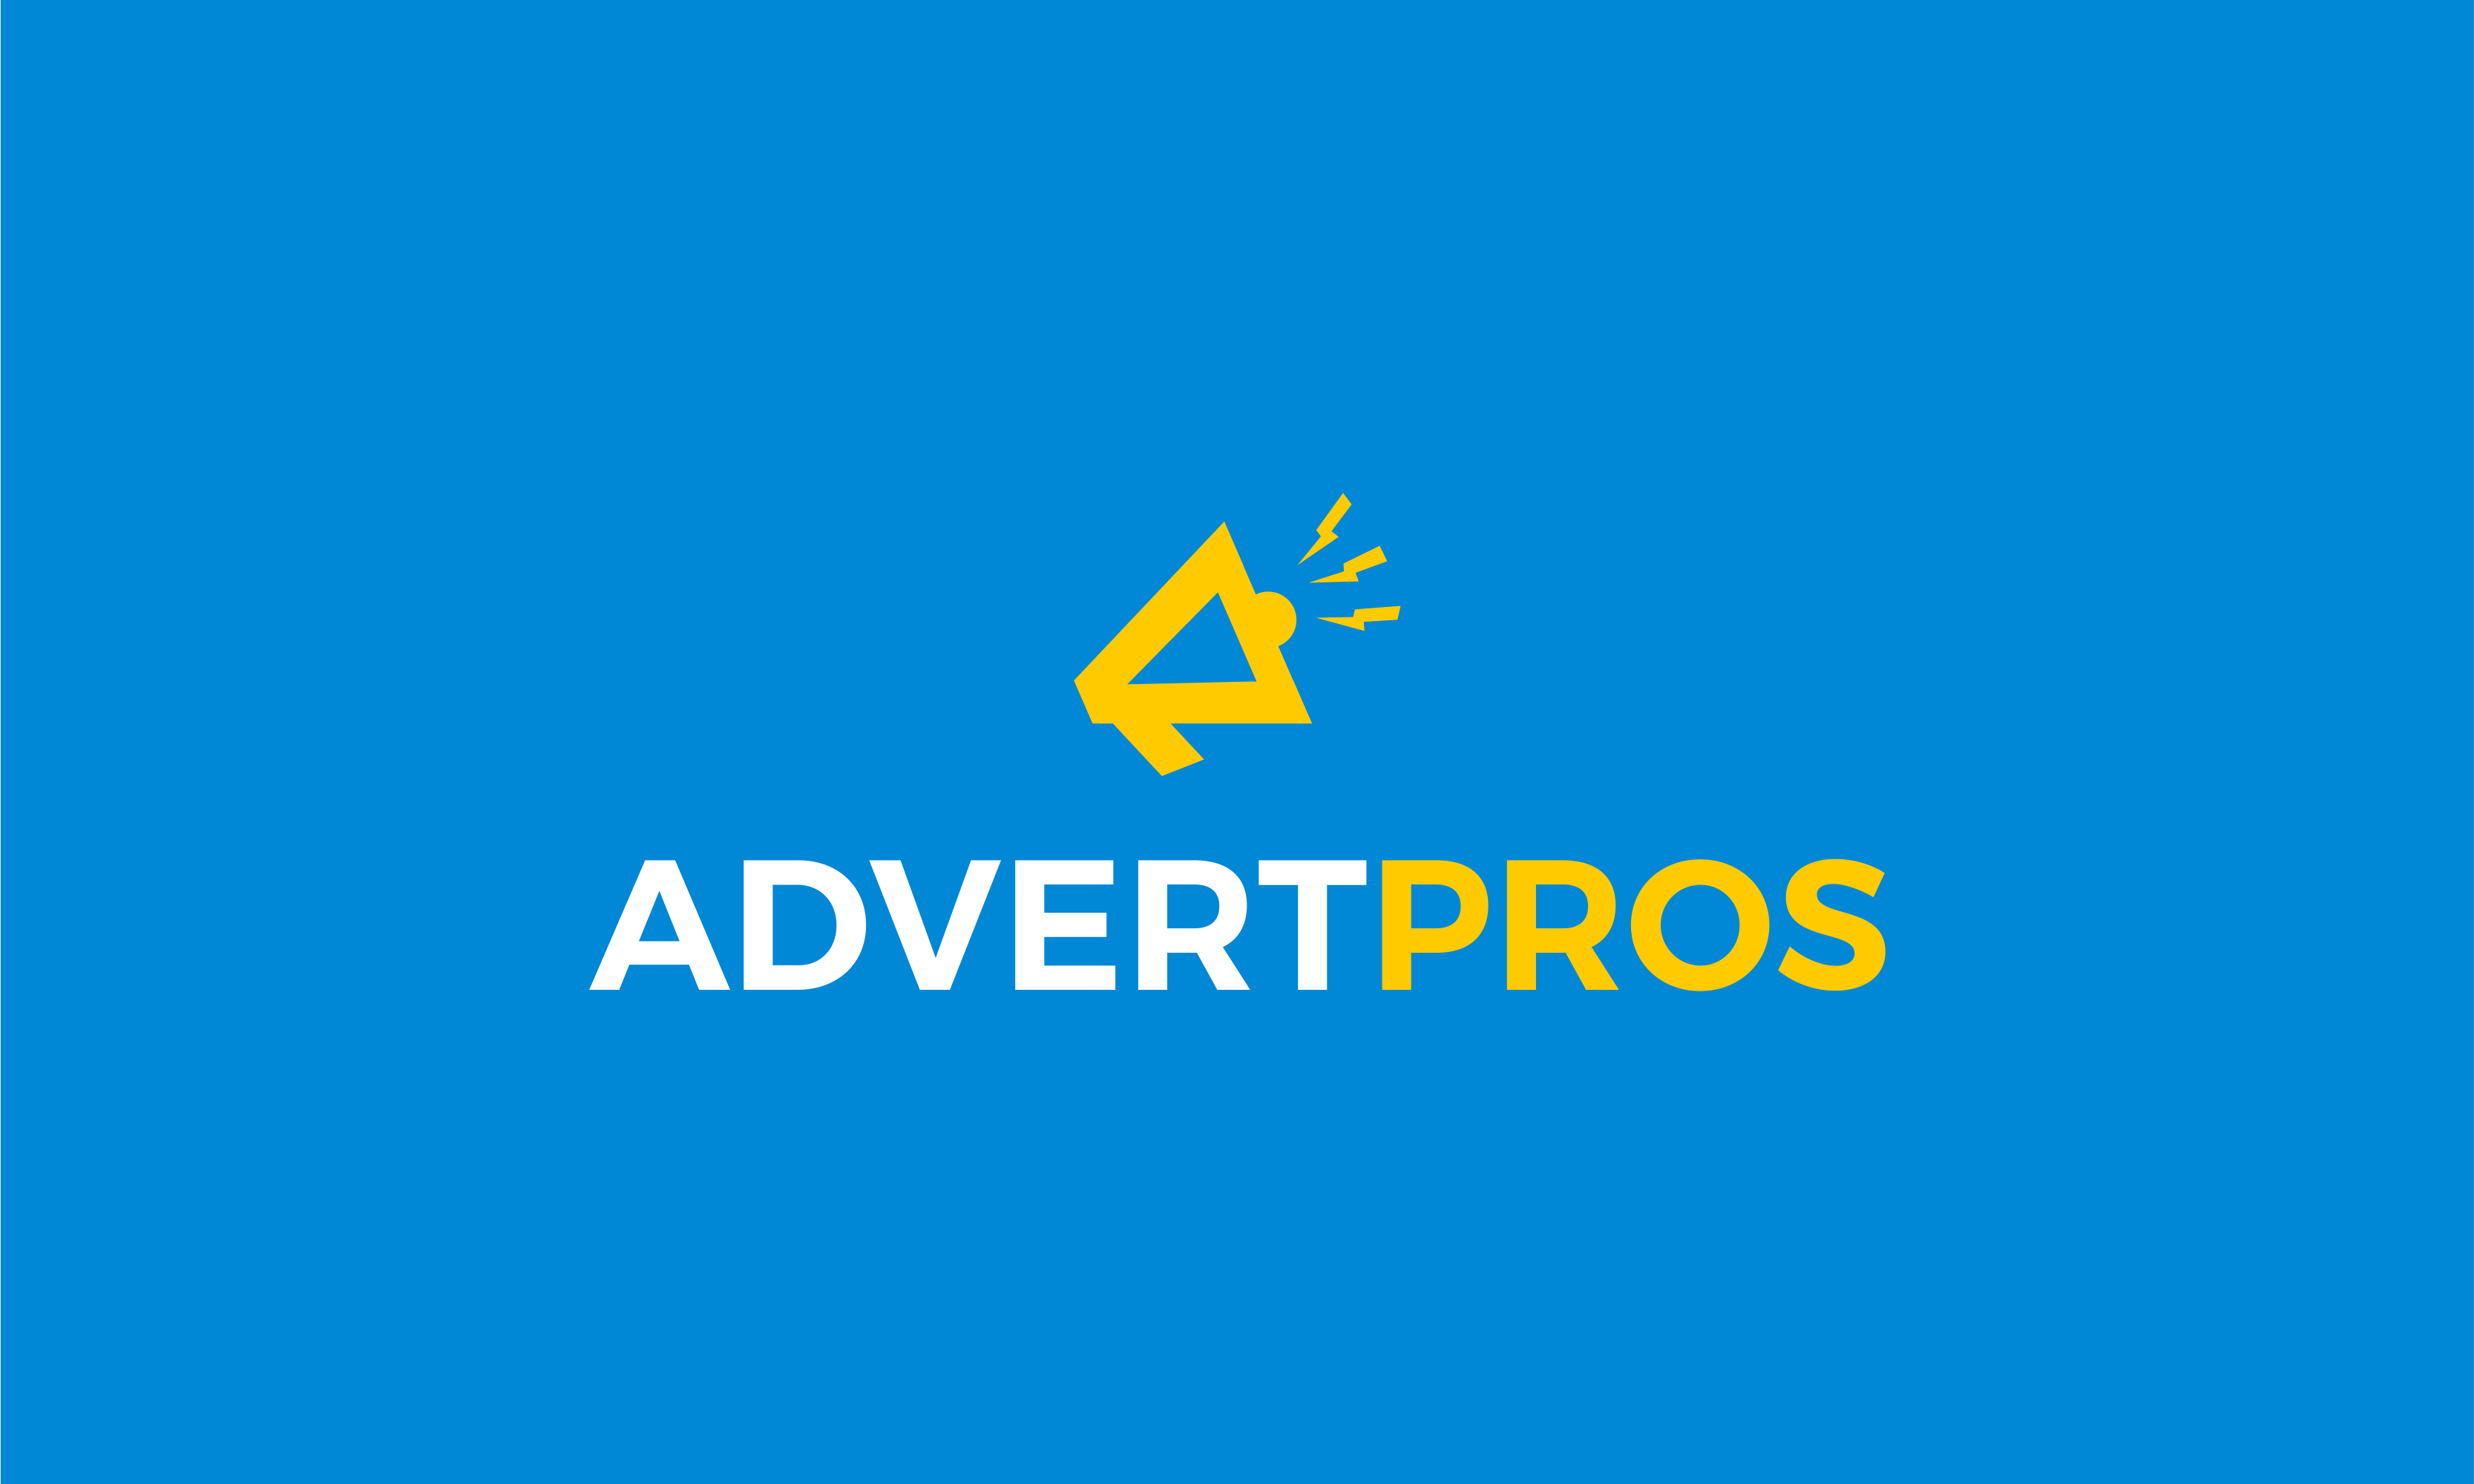 Advertpros